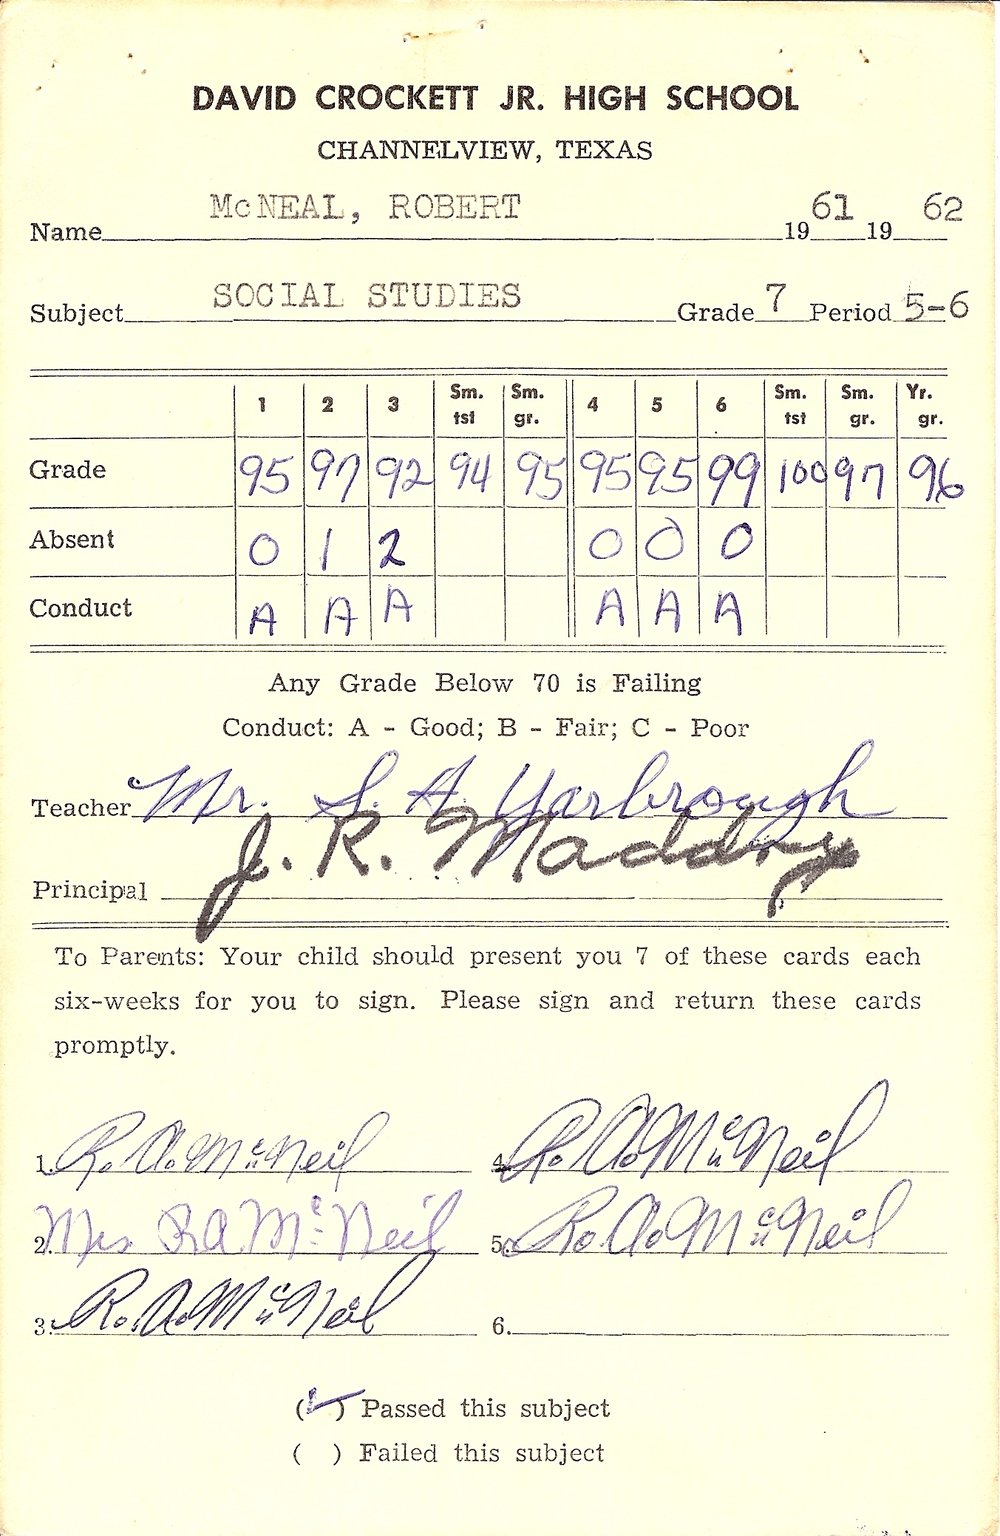 Bob McNeil - 1962 - Age 13 - Seventh Grade Social Studies Report Card